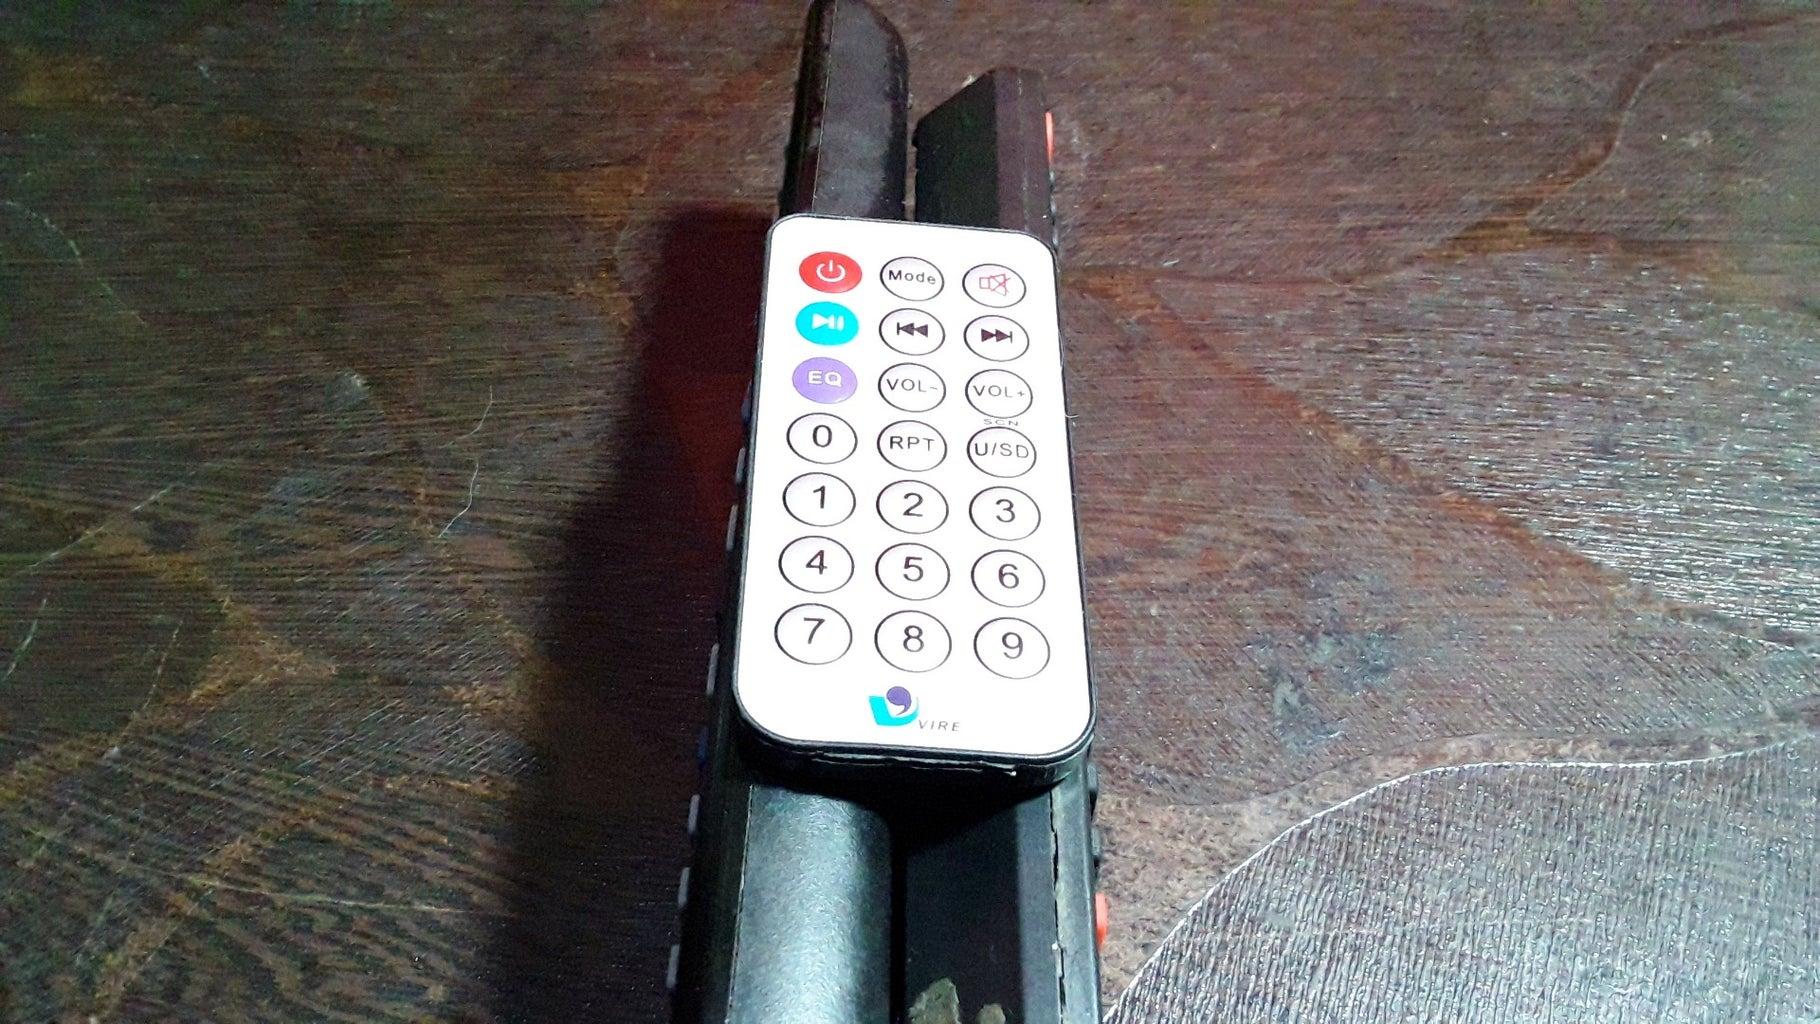 Joining the Remotes!